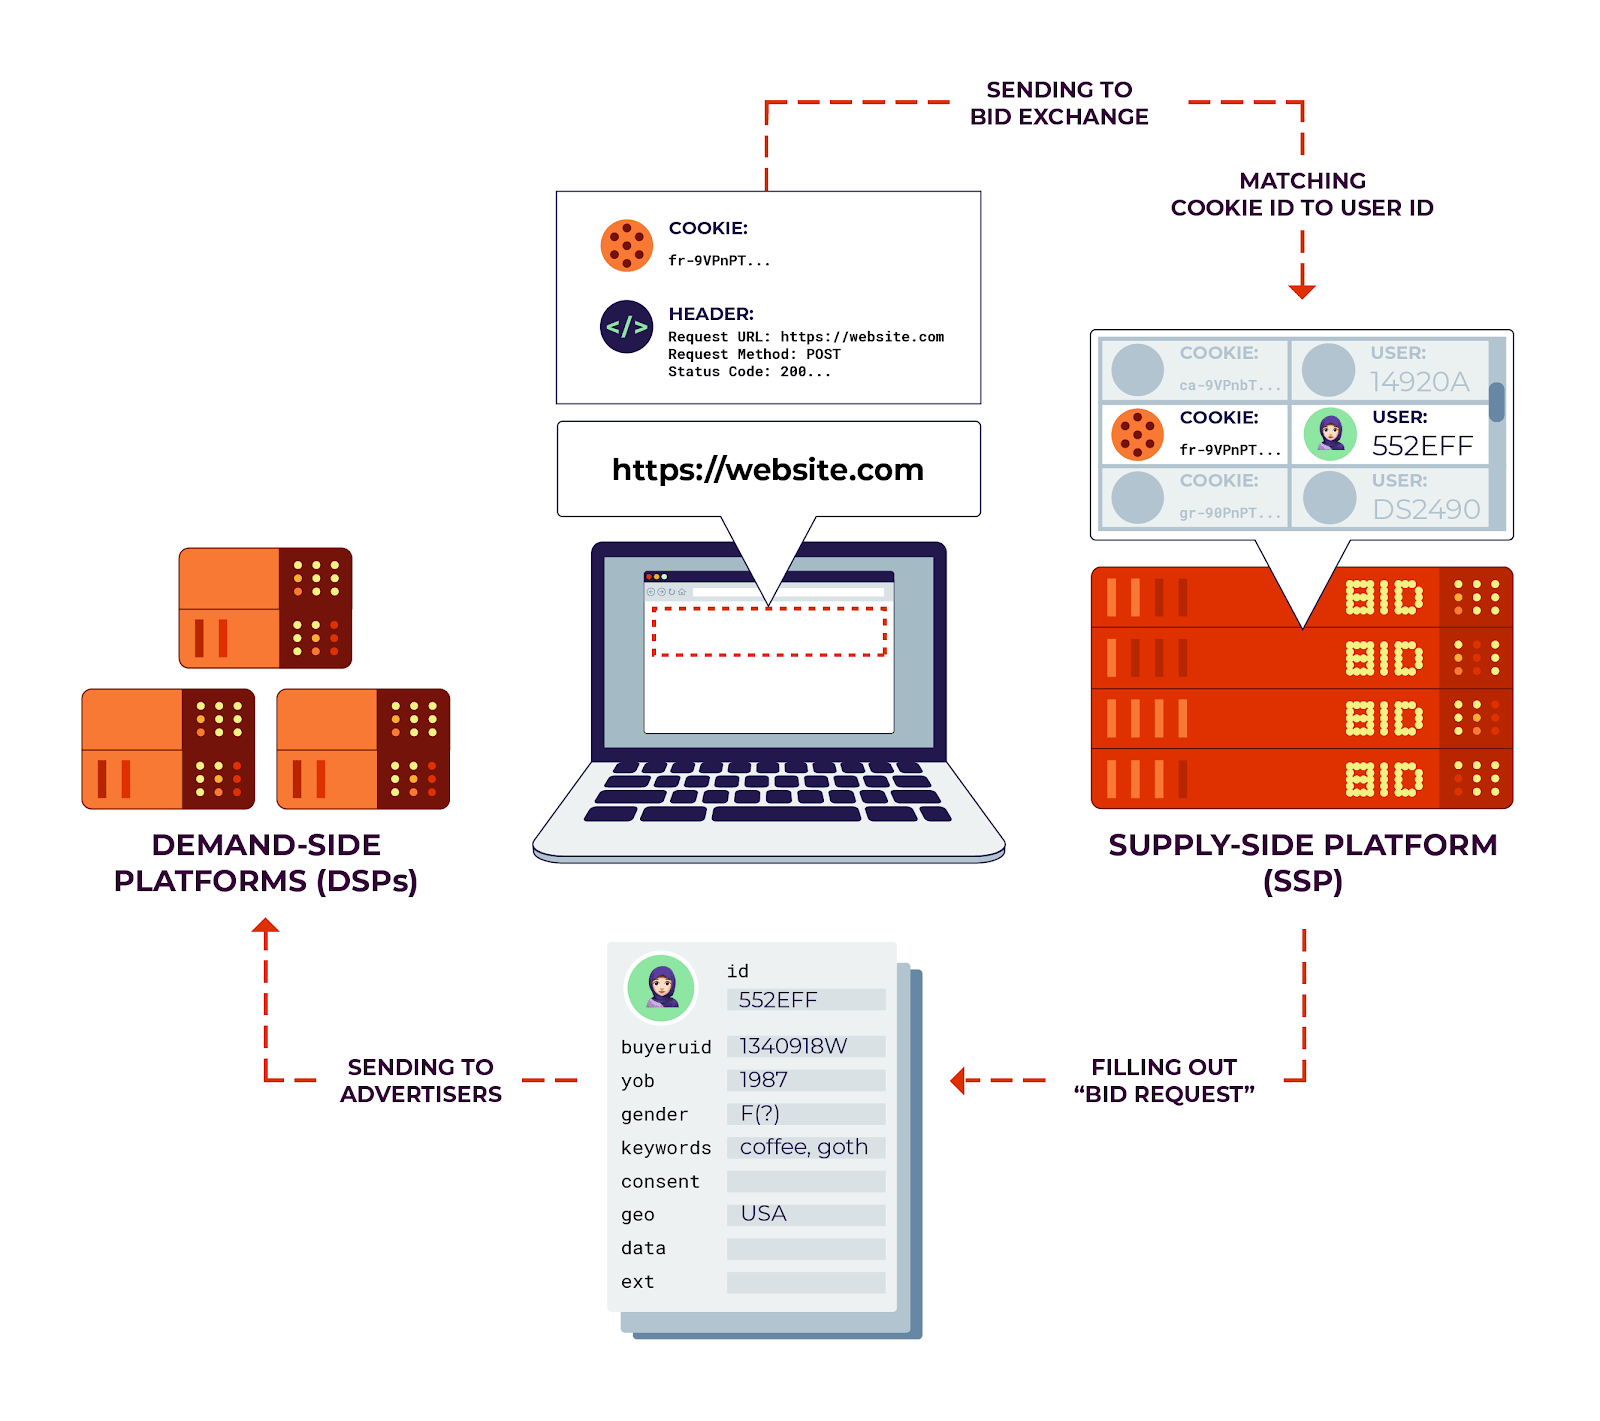 A diagram showing the data flows from a user's computer to advertisers in the real-time bidding process